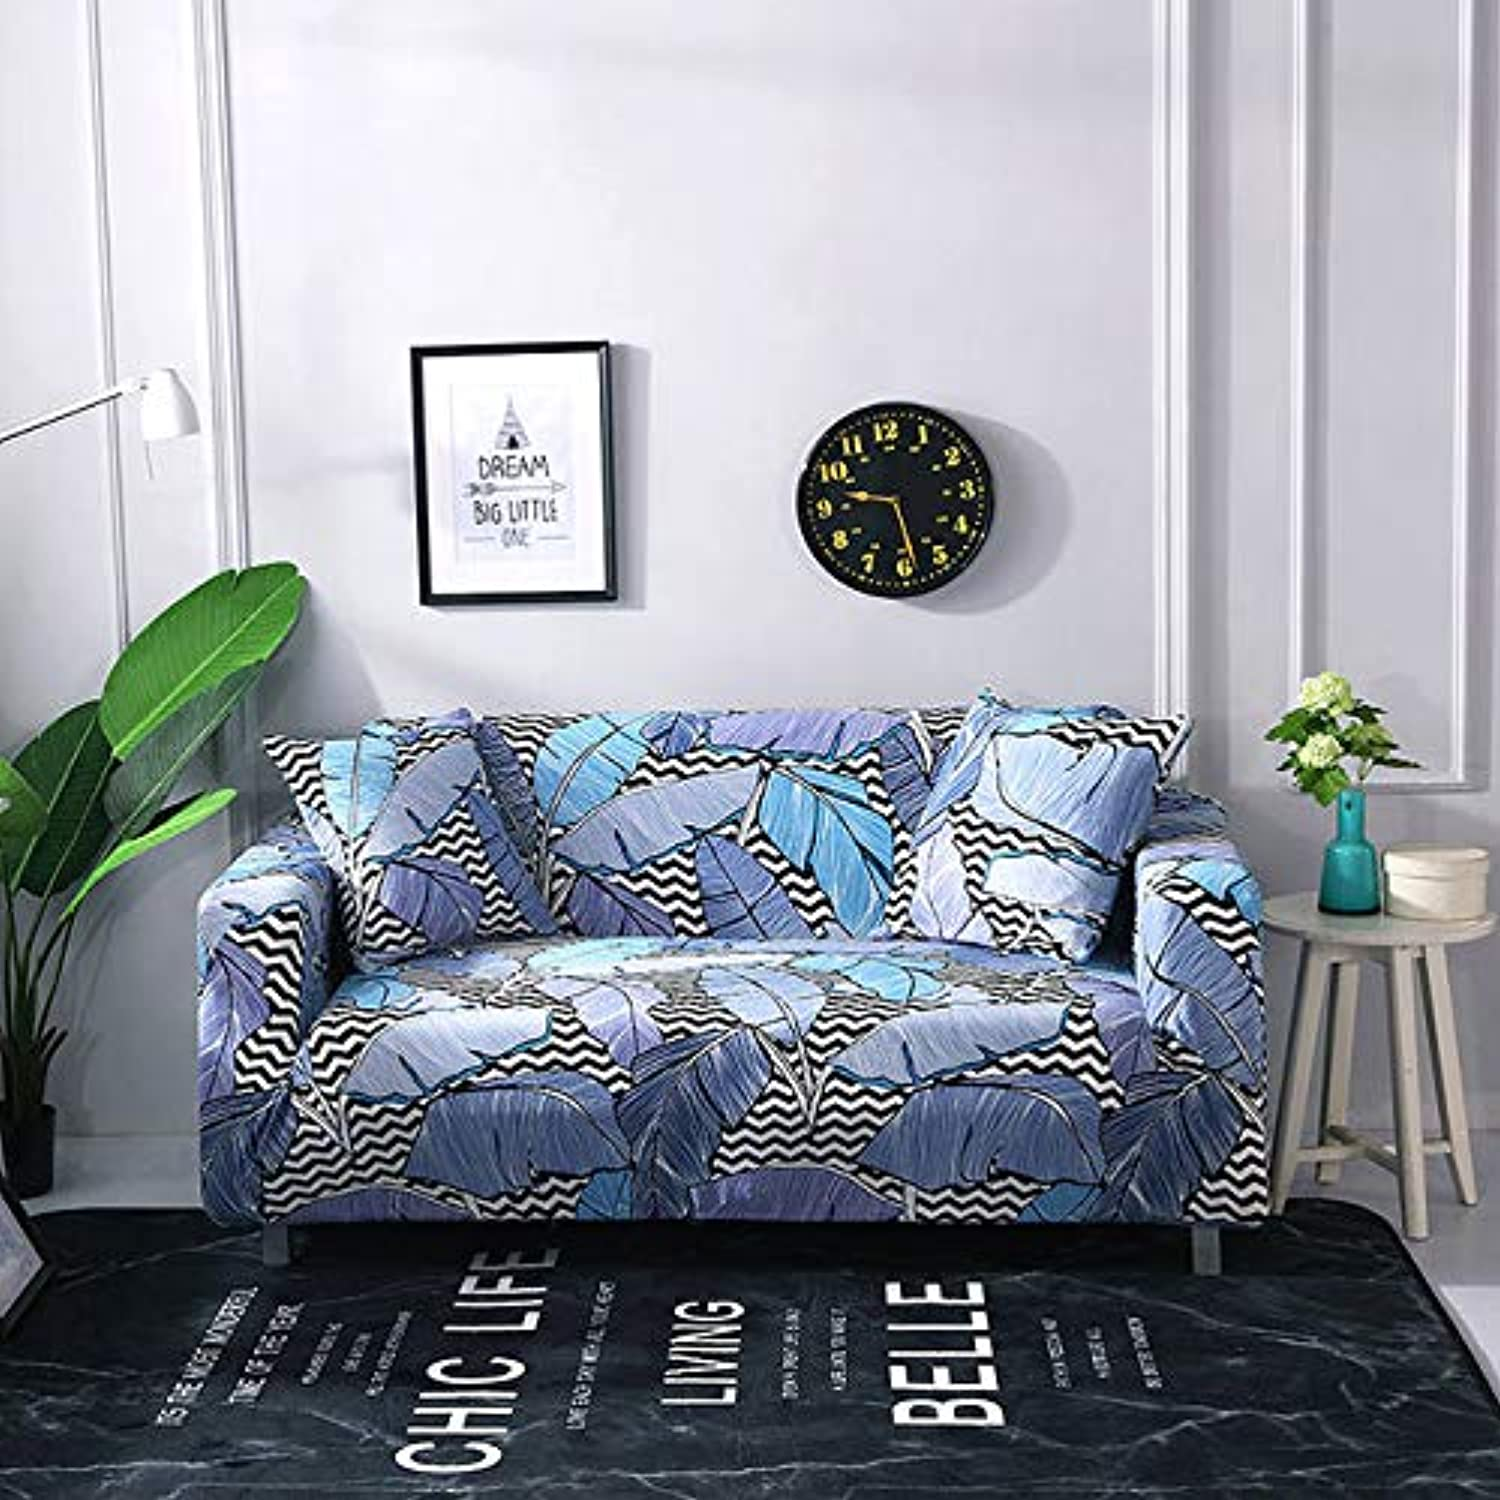 Floral Printing Stretch Slipcovers Elastic Stretch Sofa Cover for Living Room Couch Cover L Shape Armchair Cover   colour8, 2-Seater 145-185cm